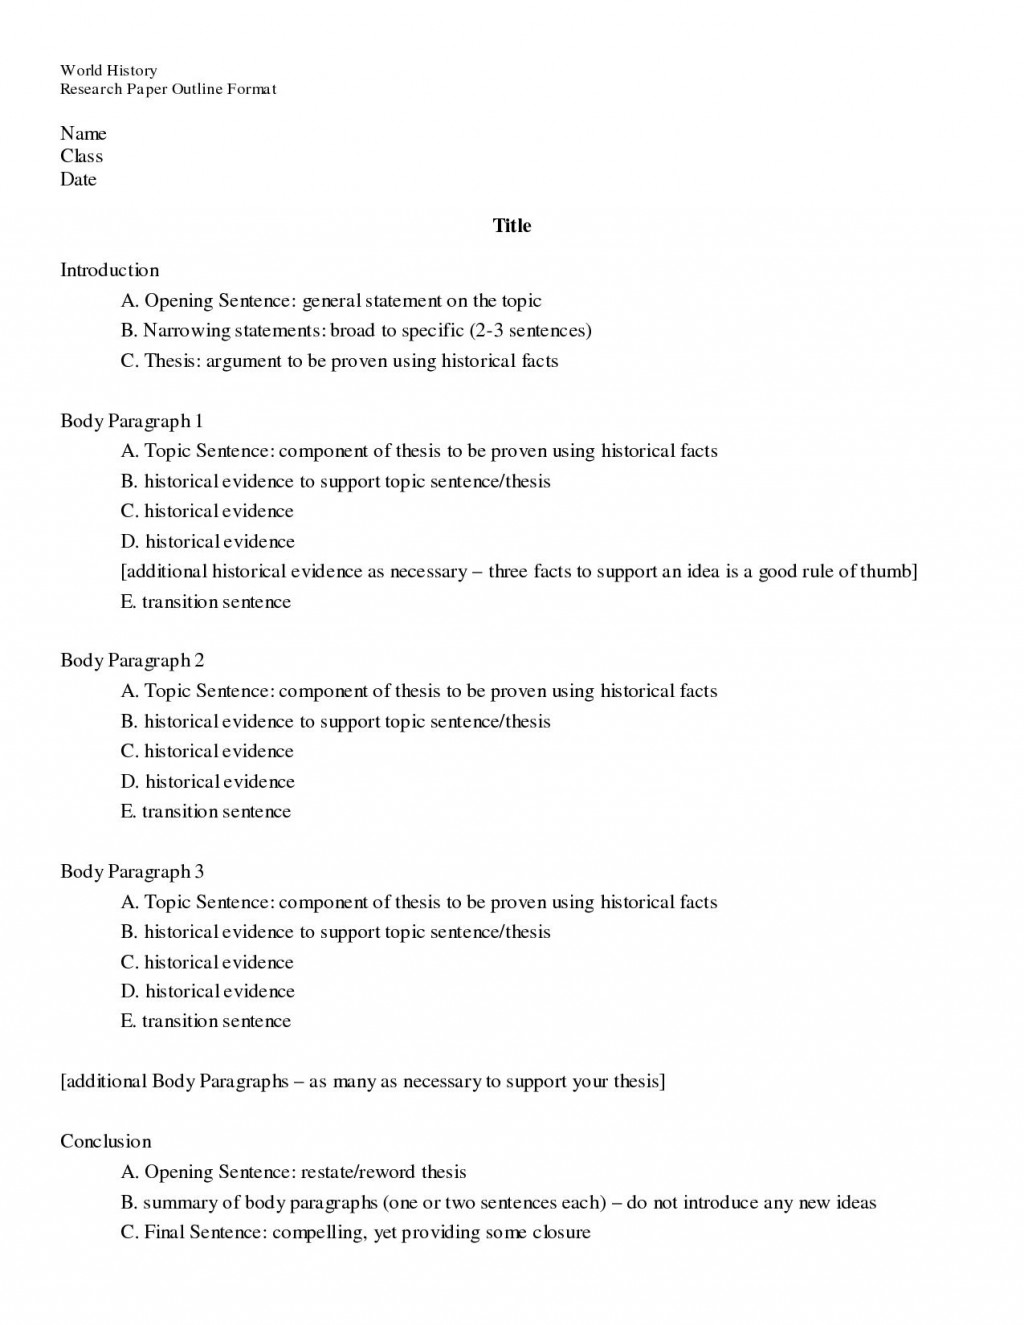 012 Outline Image1 Sample Outlines For Researchs Awful Research Papers Writing Large